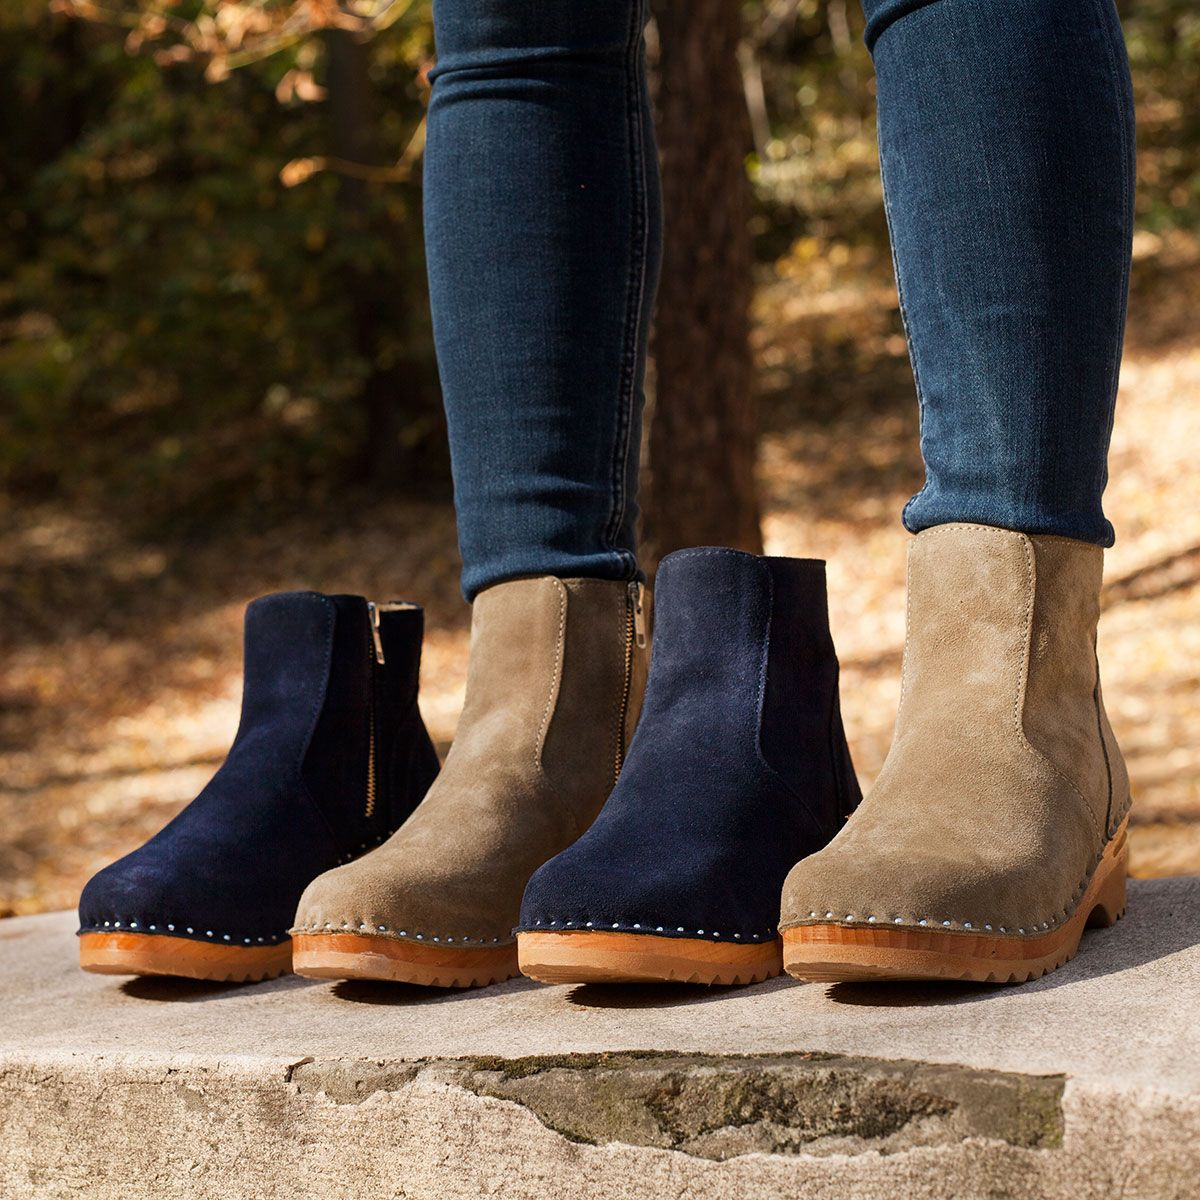 b90ccc2814b558 New Turner clog boots available in aloe green and navy blue suede  troentorp